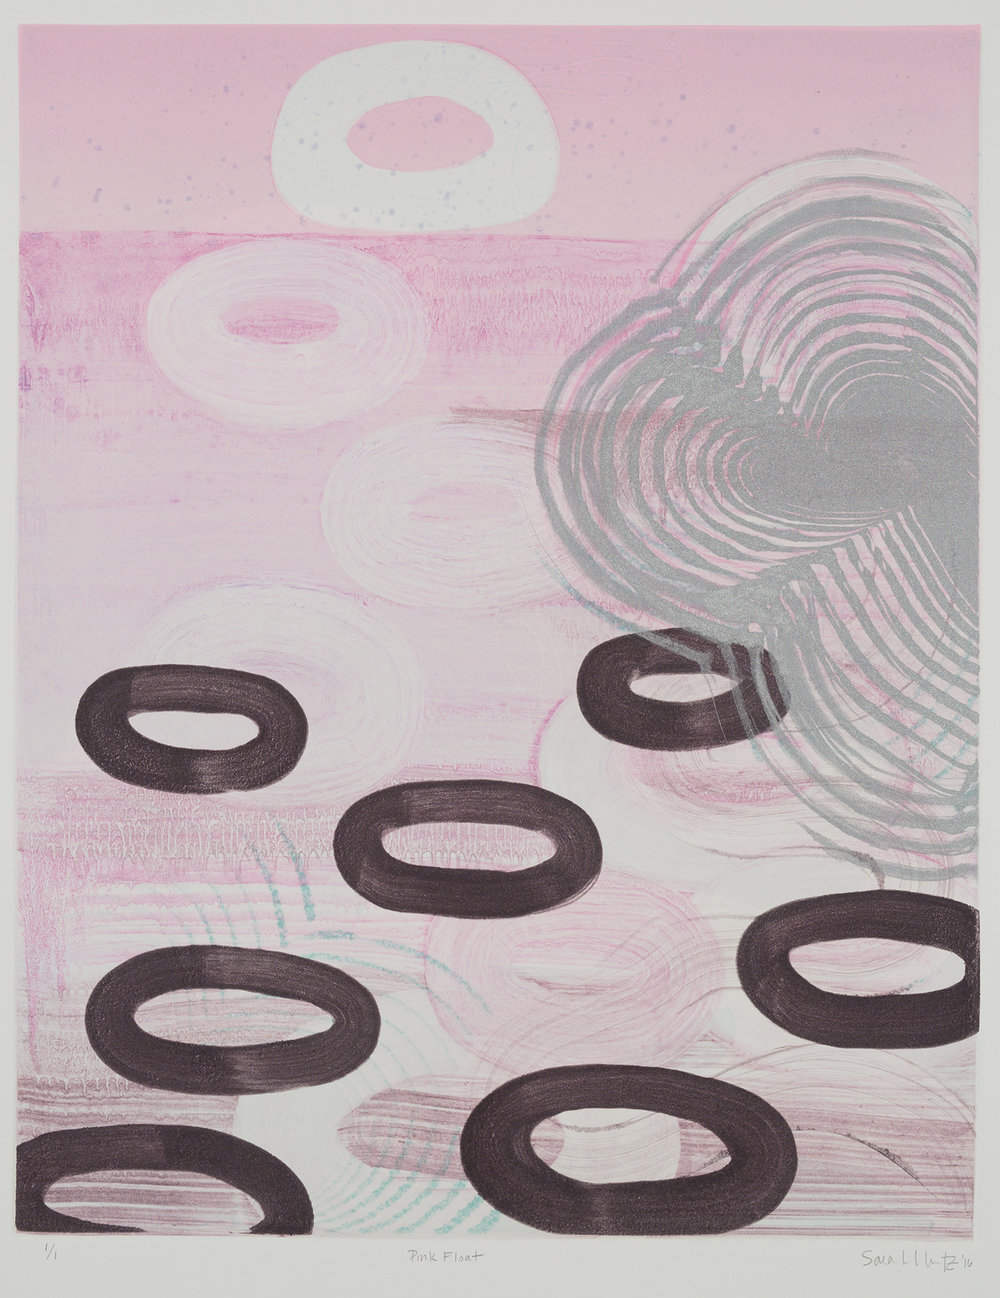 Pink Float , 2016 Monotype Image Size: 20 x 16 inches Paper Size: 30 x 22 inches Series of 8